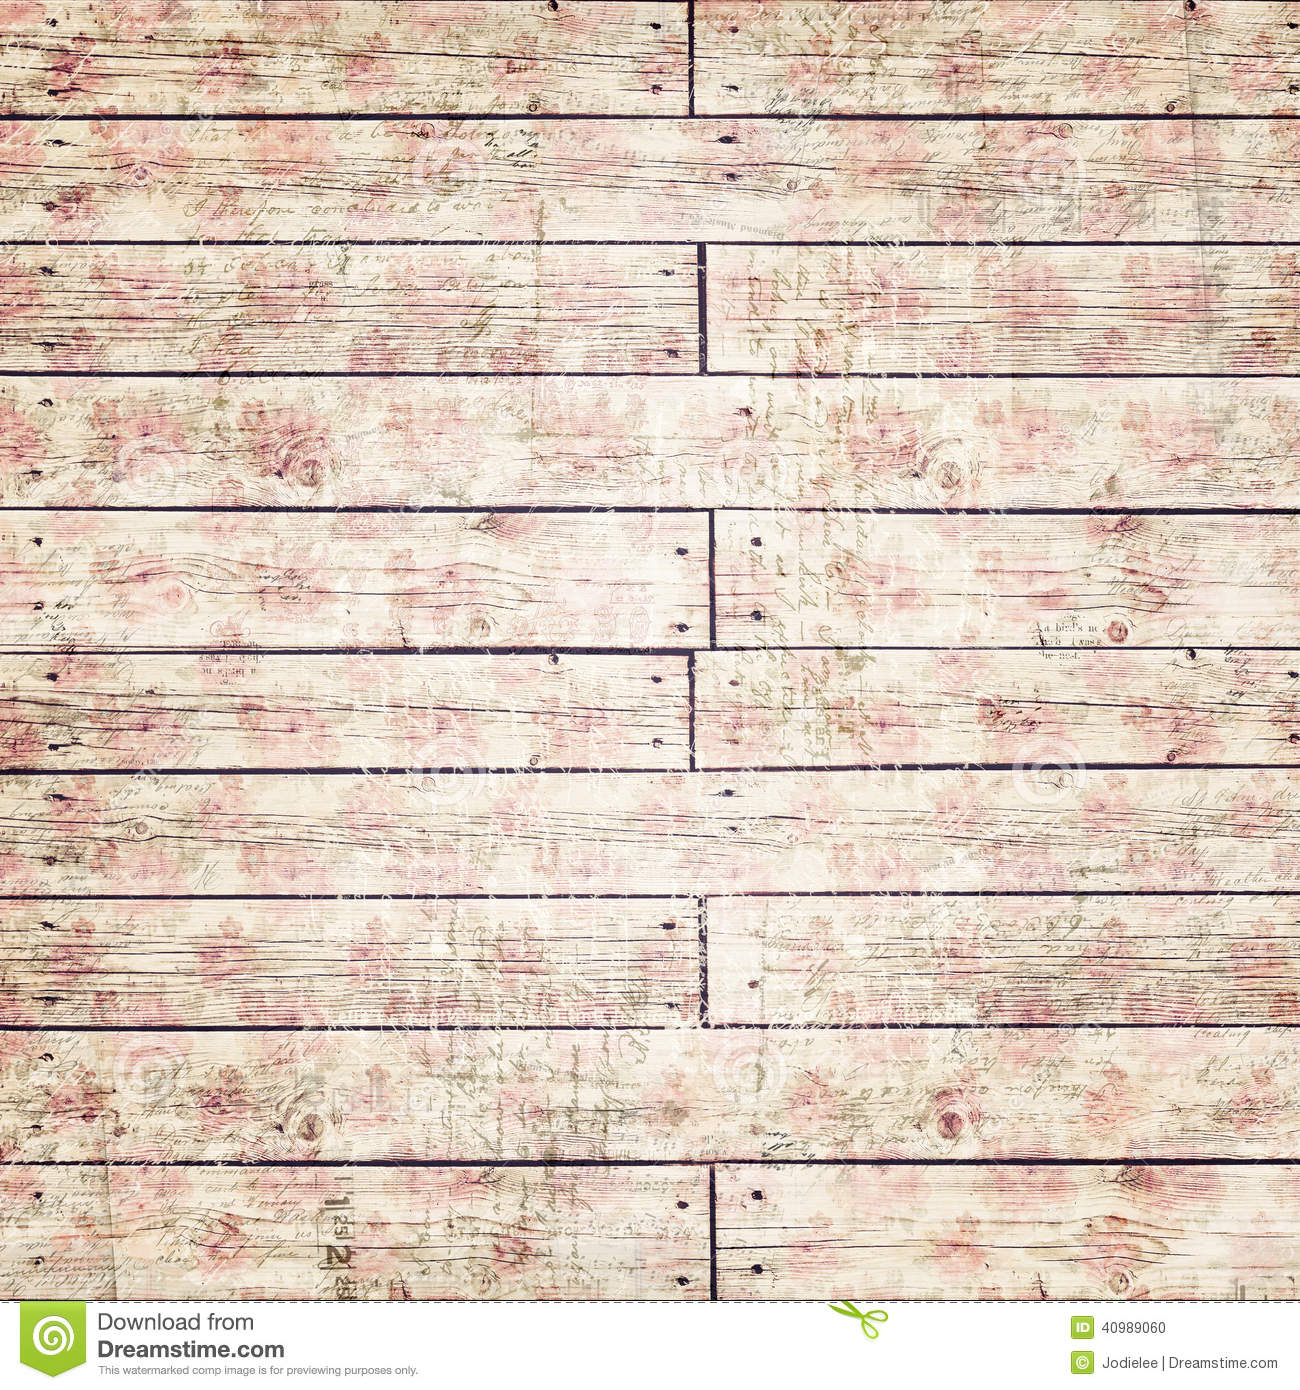 Shabby Chic Background Stock Photo - Image: 40989060